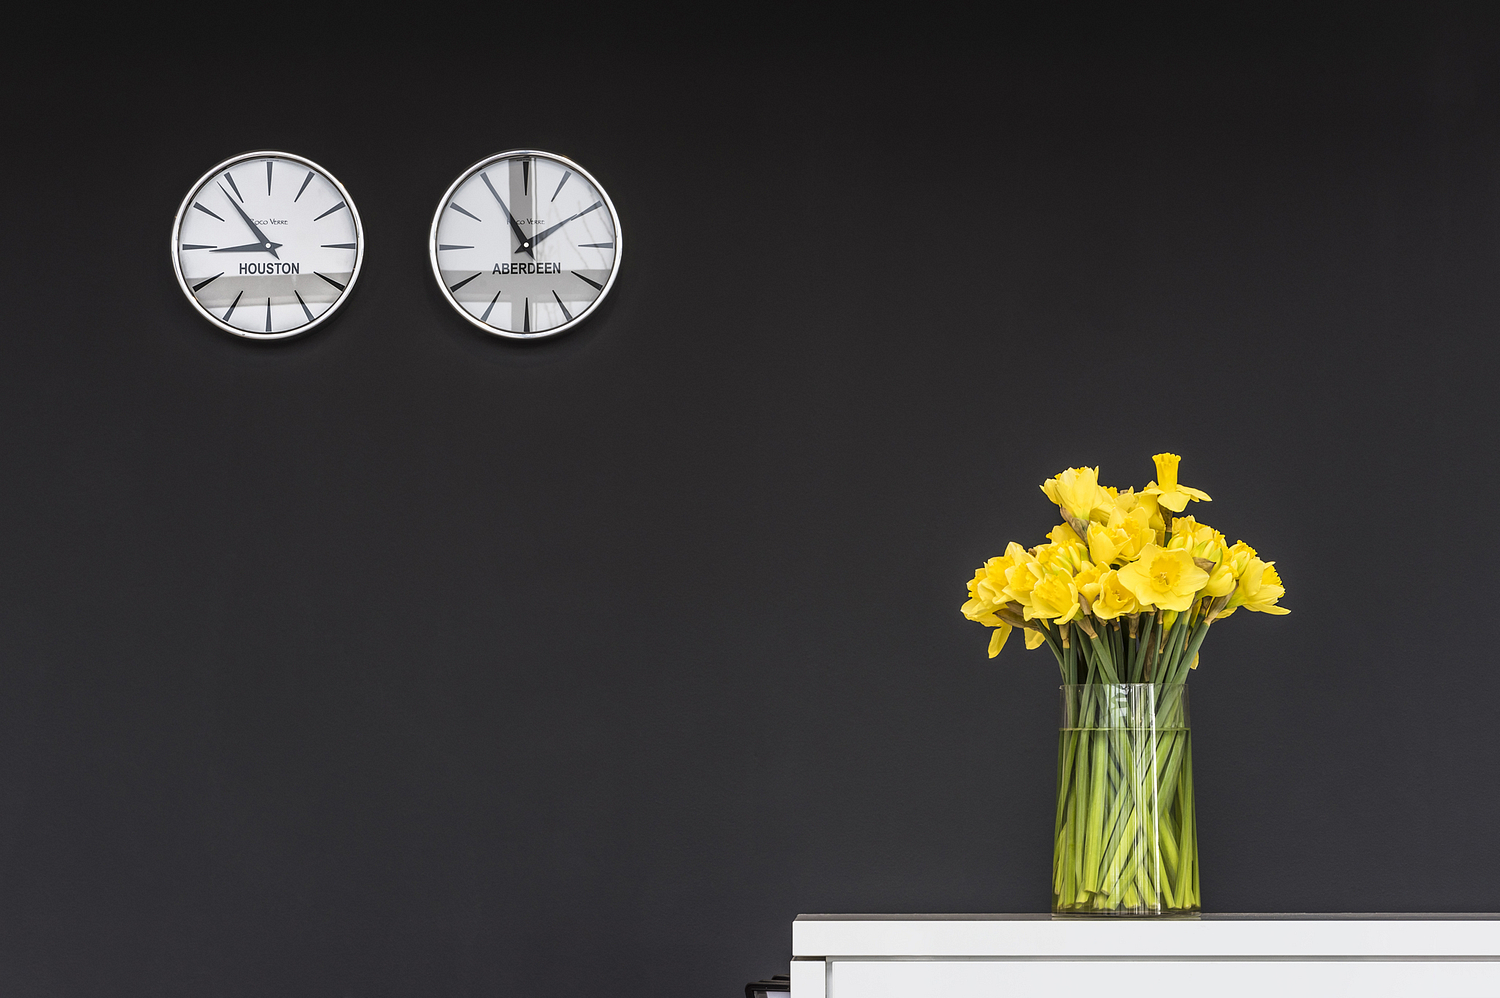 Clocks and daffodills, Aberdeen